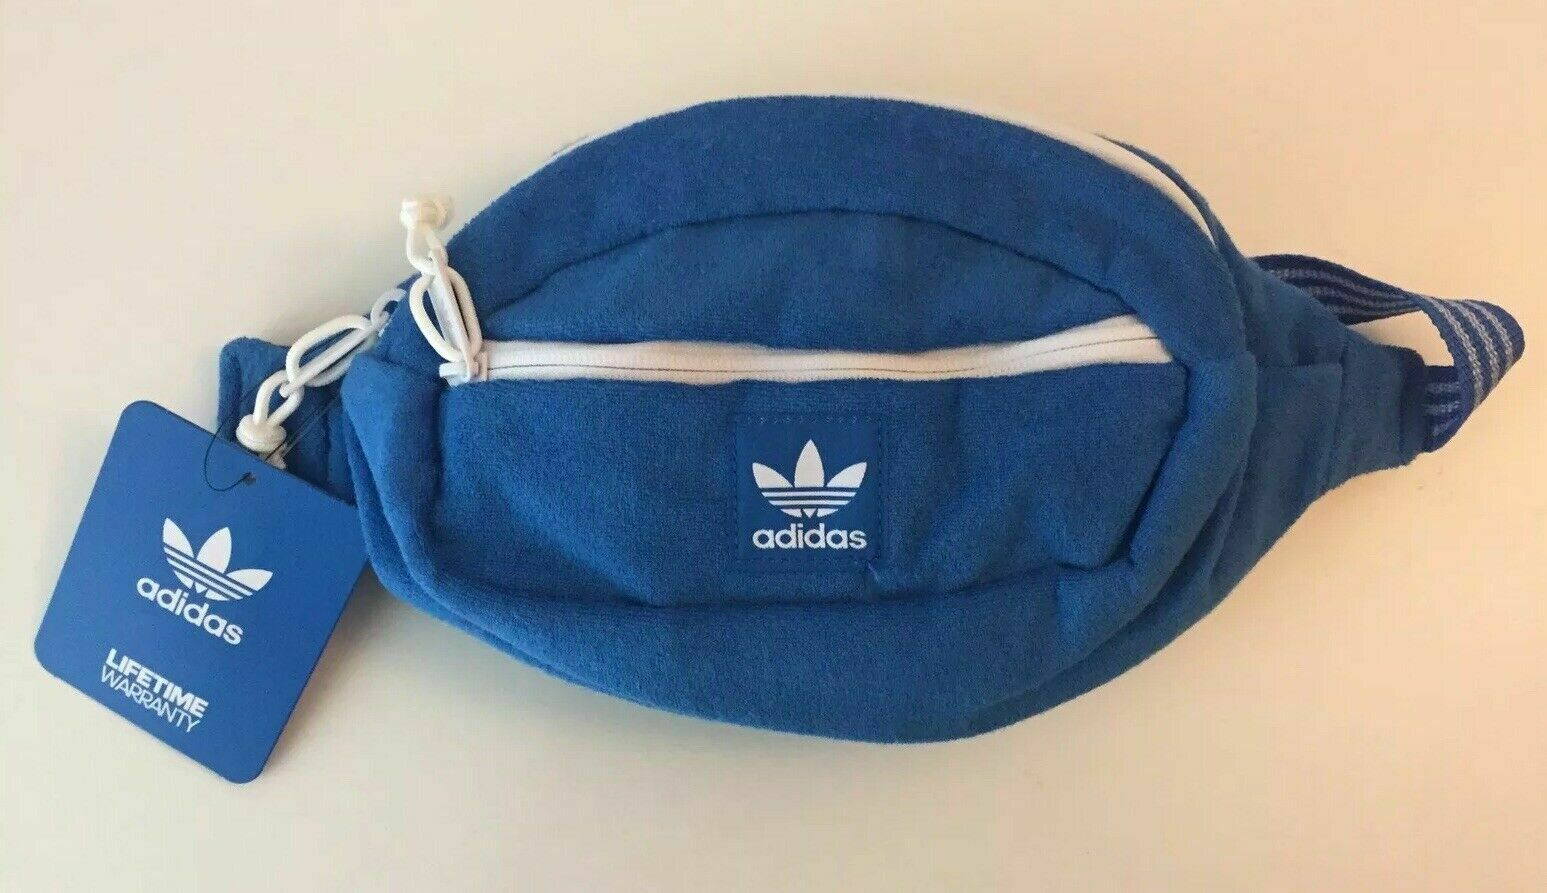 ADIDAS OG Originals Terry Blue Fanny Pack Waist bag FREE SHI